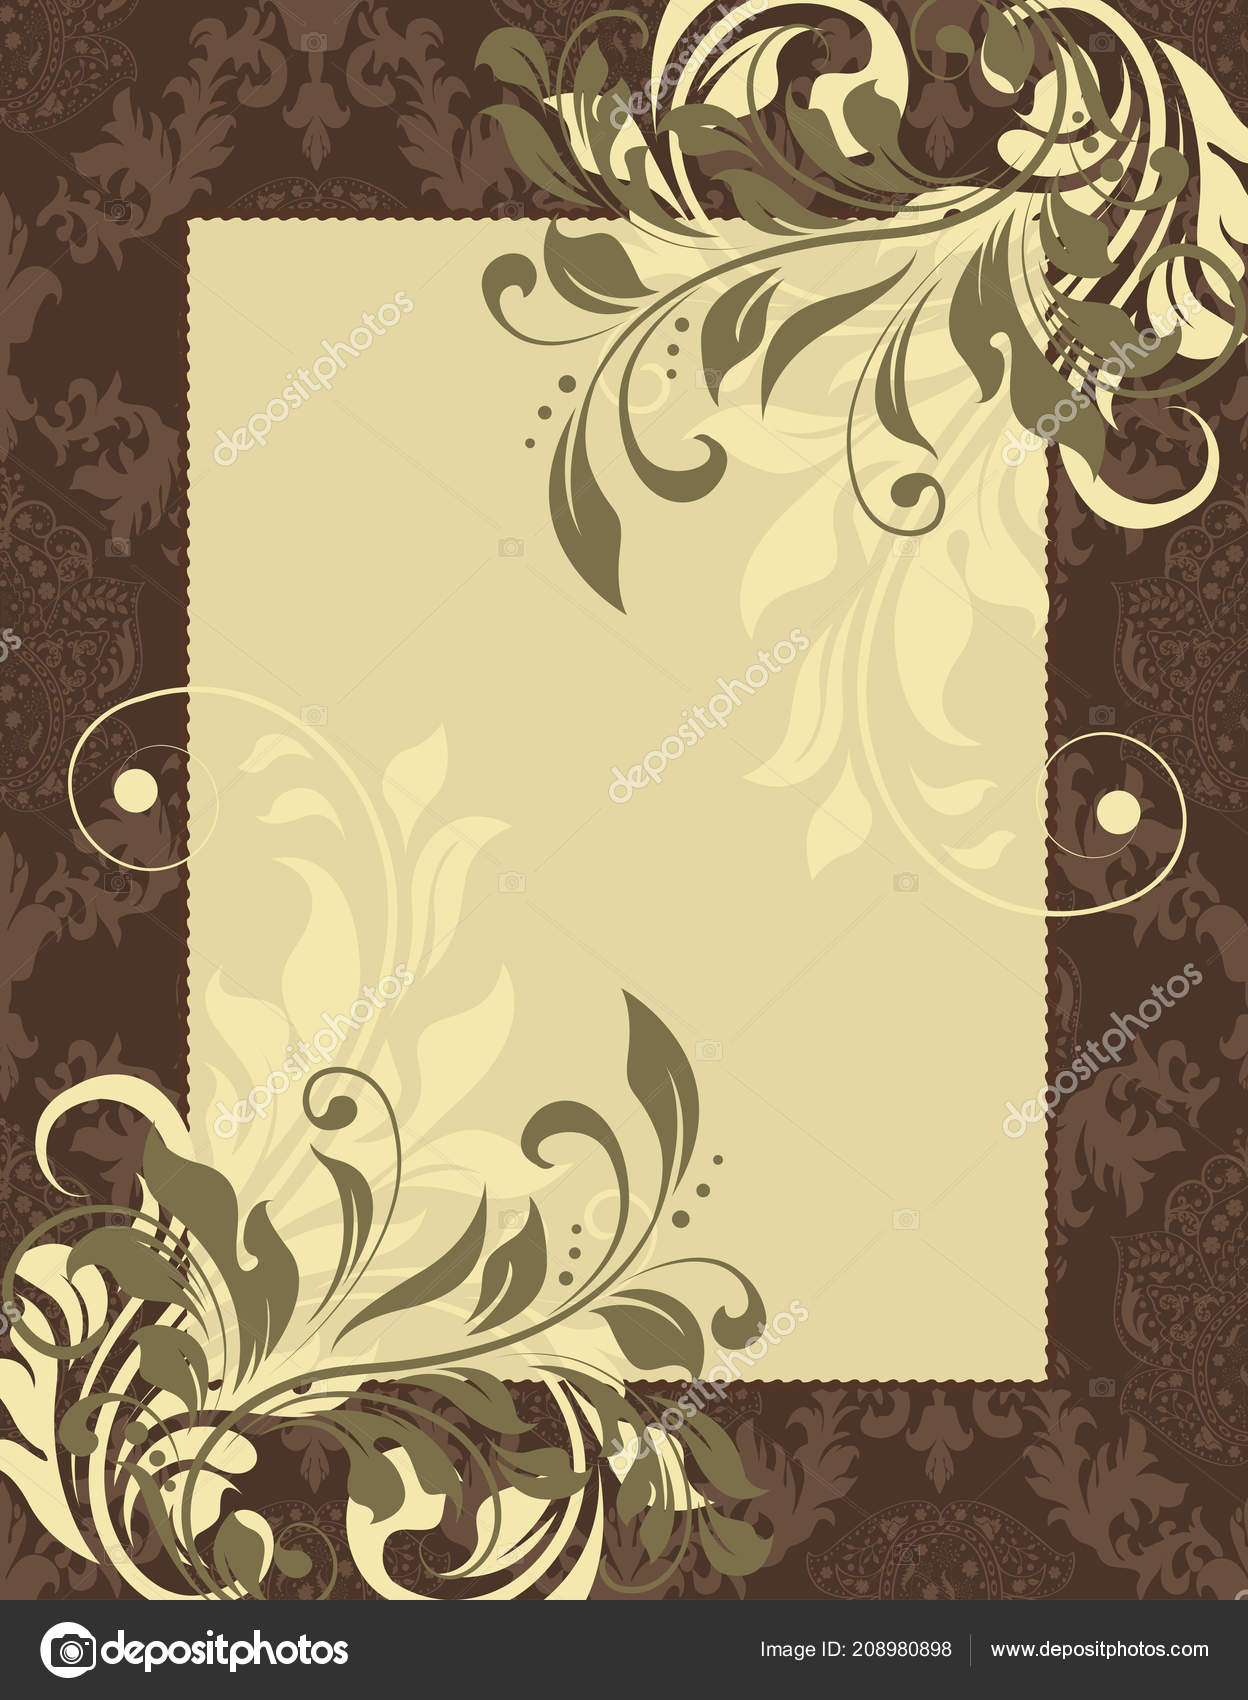 Vintage invitation card ornate elegant retro abstract floral design vintage invitation card ornate elegant retro abstract floral design vector vetor de stock stopboris Gallery